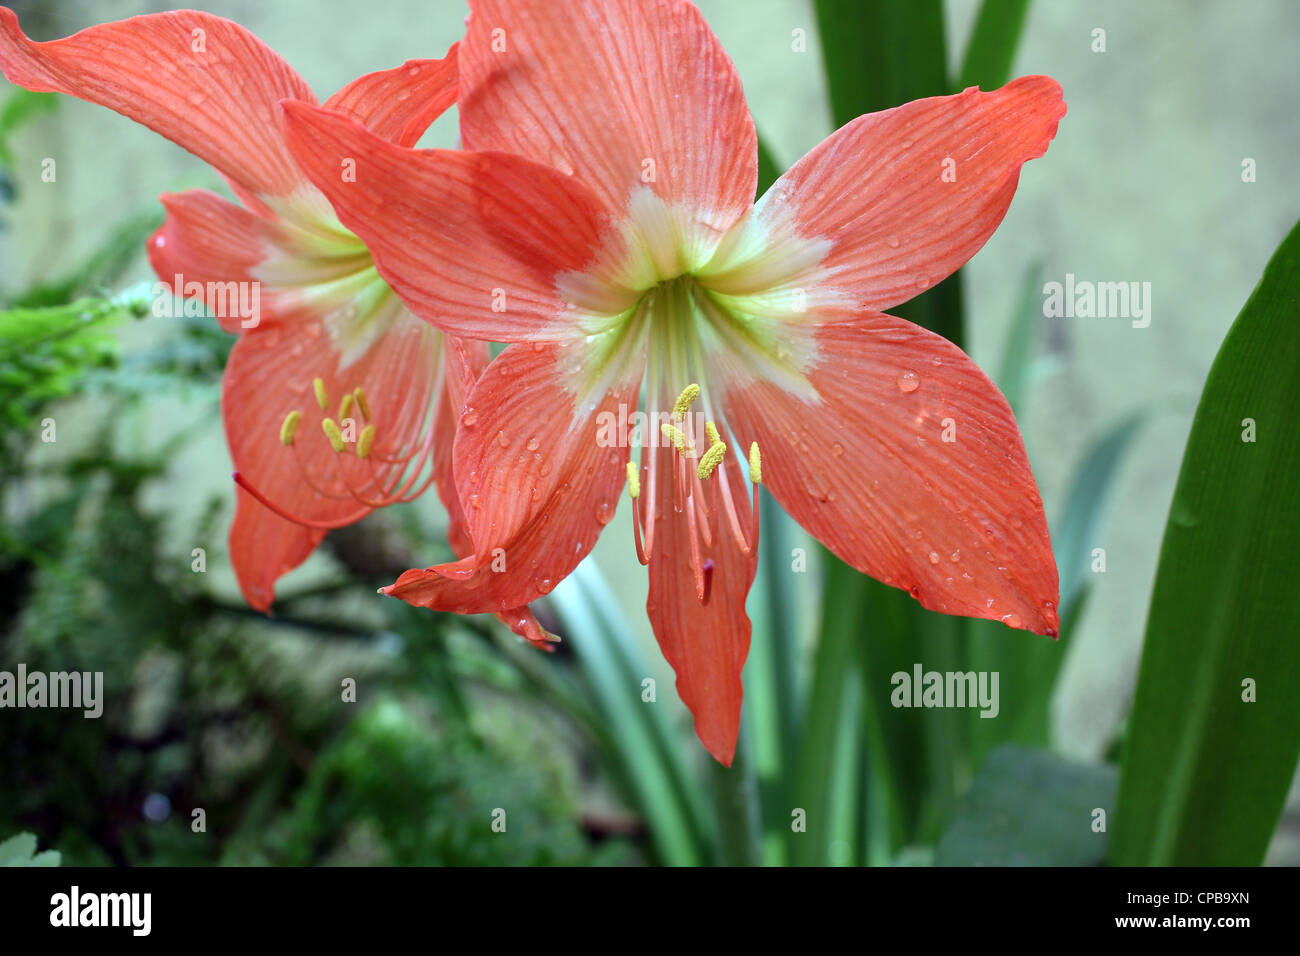 Lilly flower lilies - Stock Image